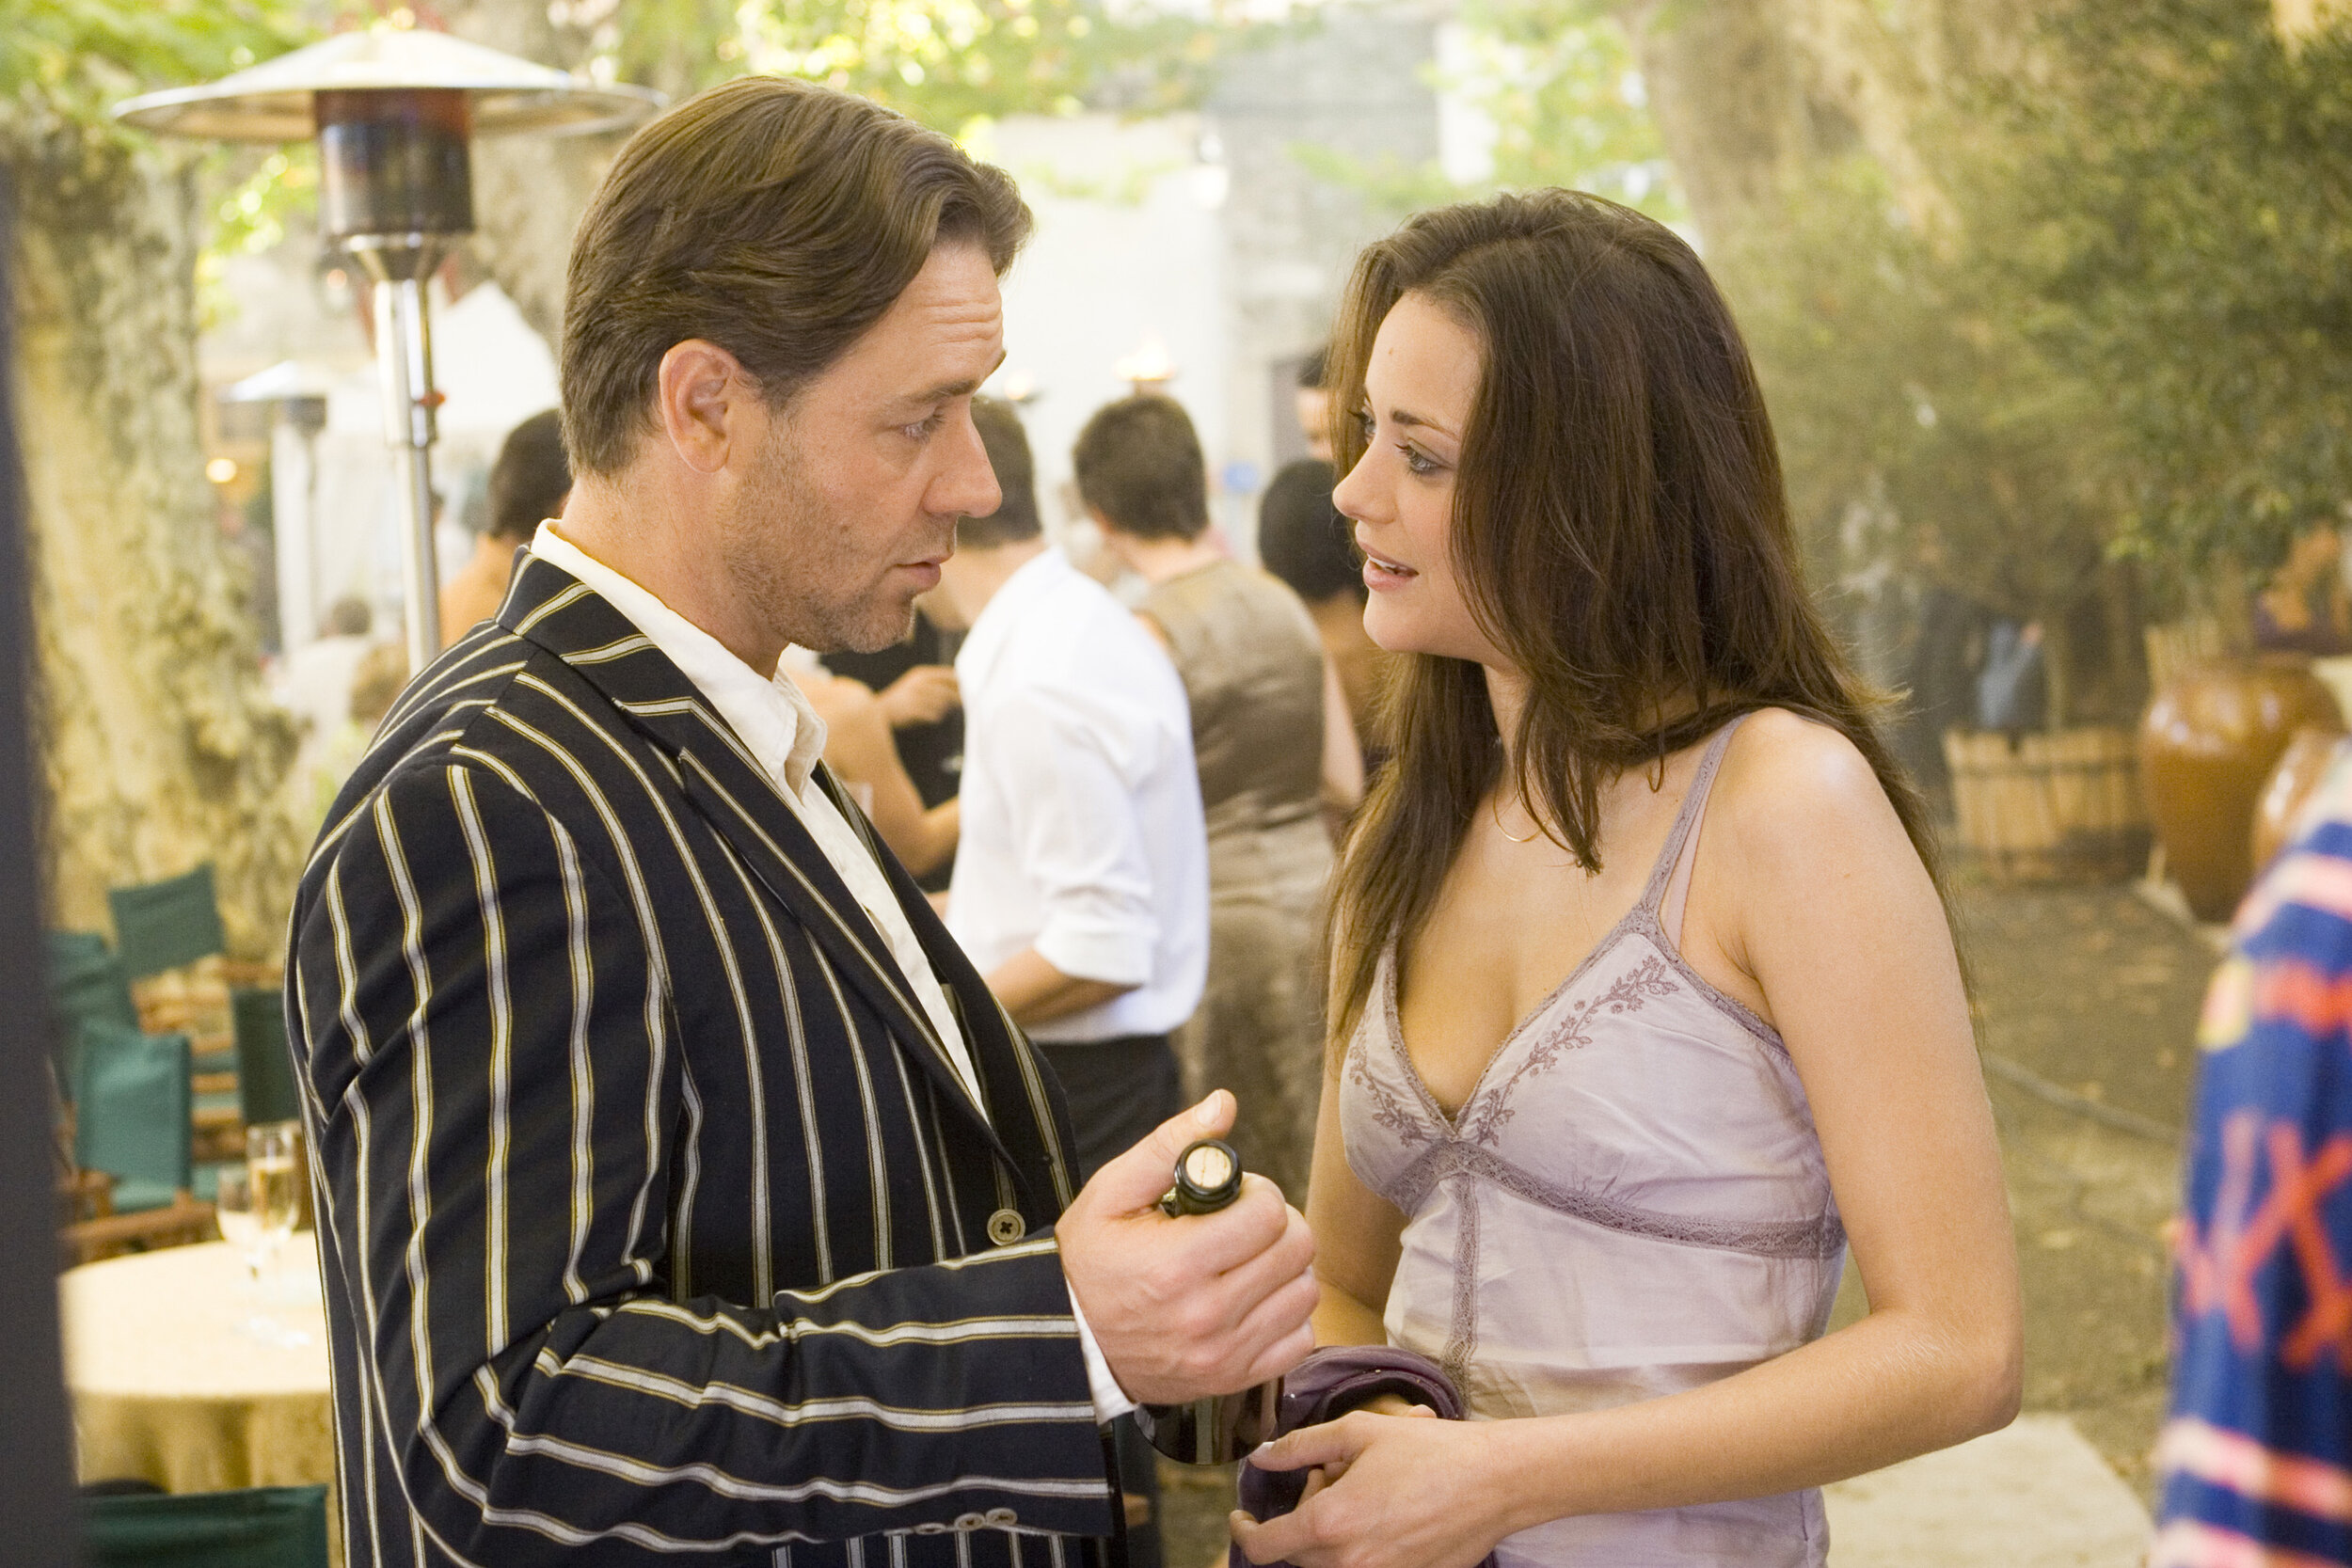 Russell Crowe and Marion Cotillard in 'A Good Year', based on the homonymous novel by Peter Mayle